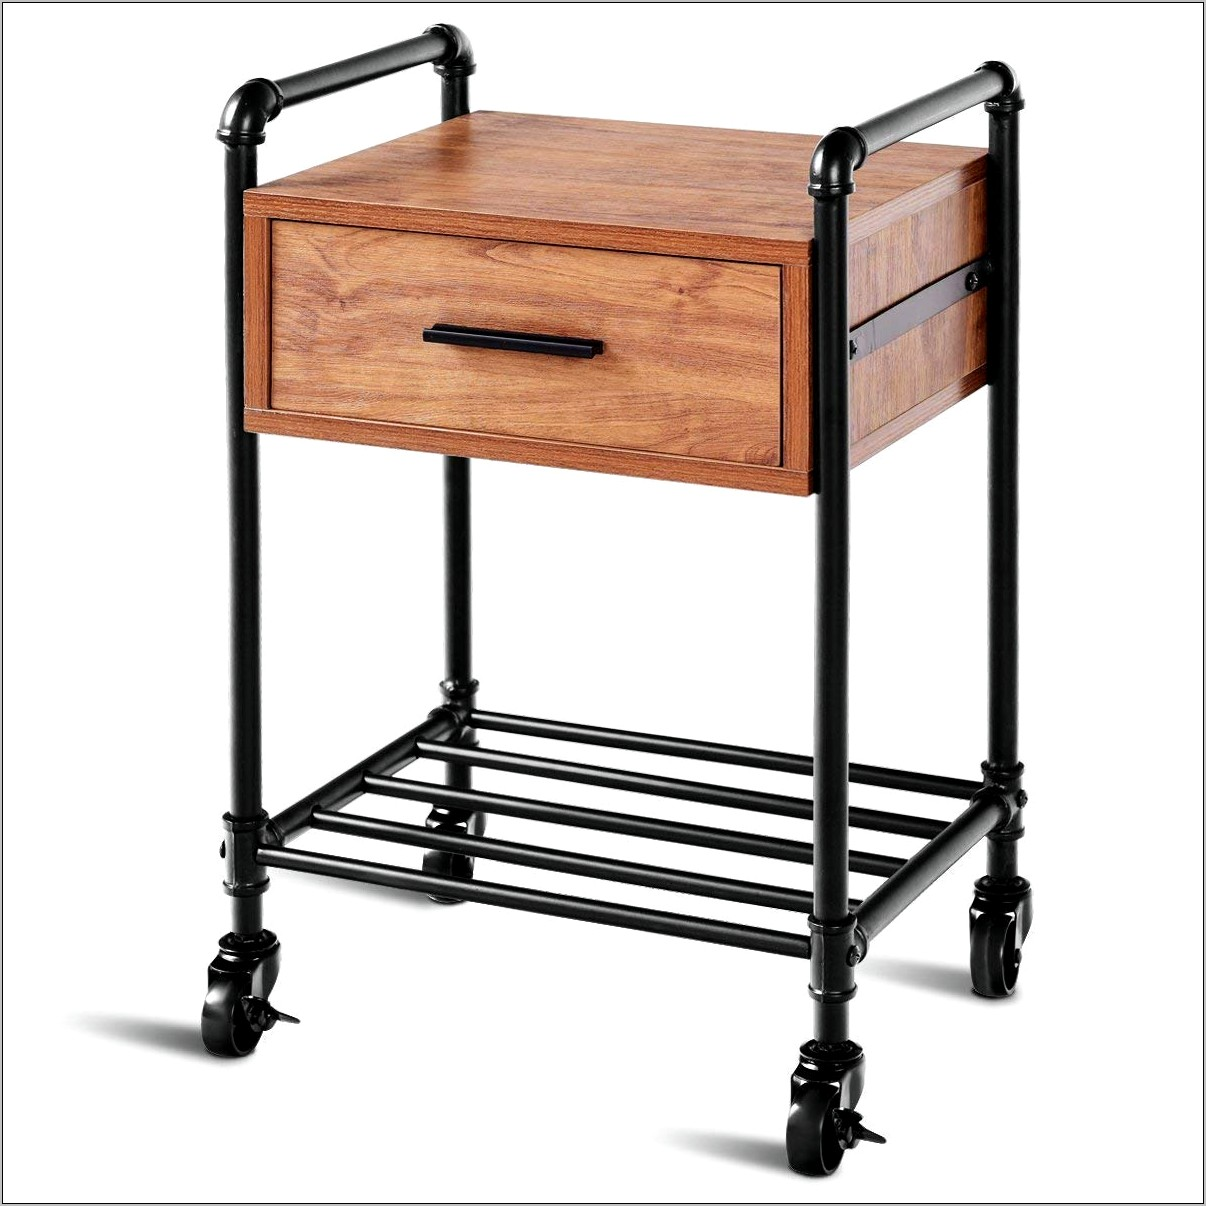 Kitchen Decor Side Table On Wheels